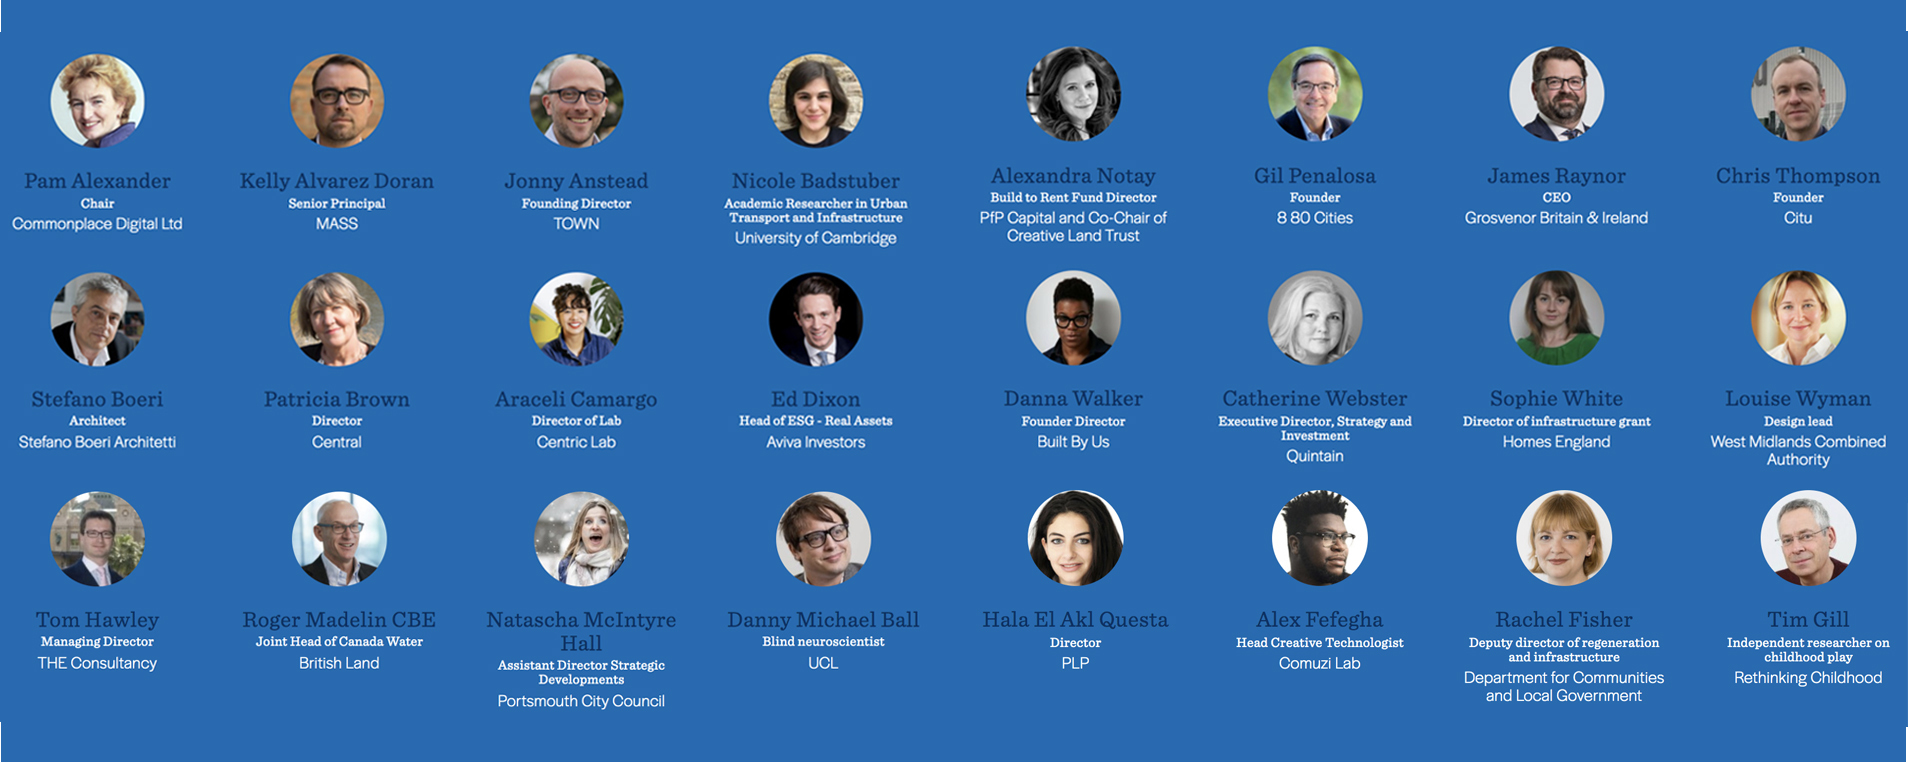 Festival of Place 2020 speakers